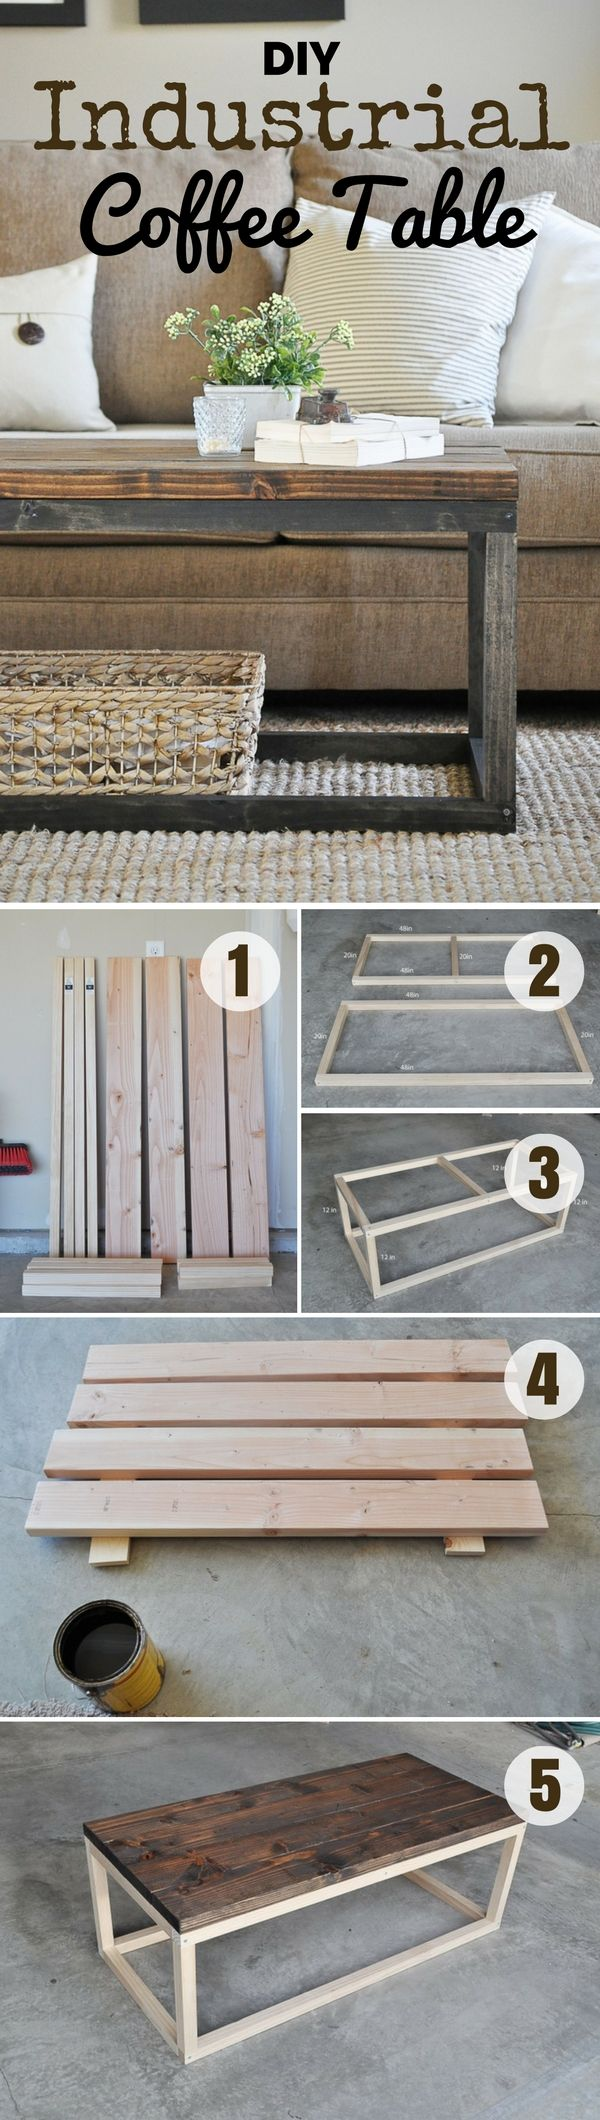 Check out how to build this easy DIY Industrial Coffee Table 10 more styles @istandarddesign